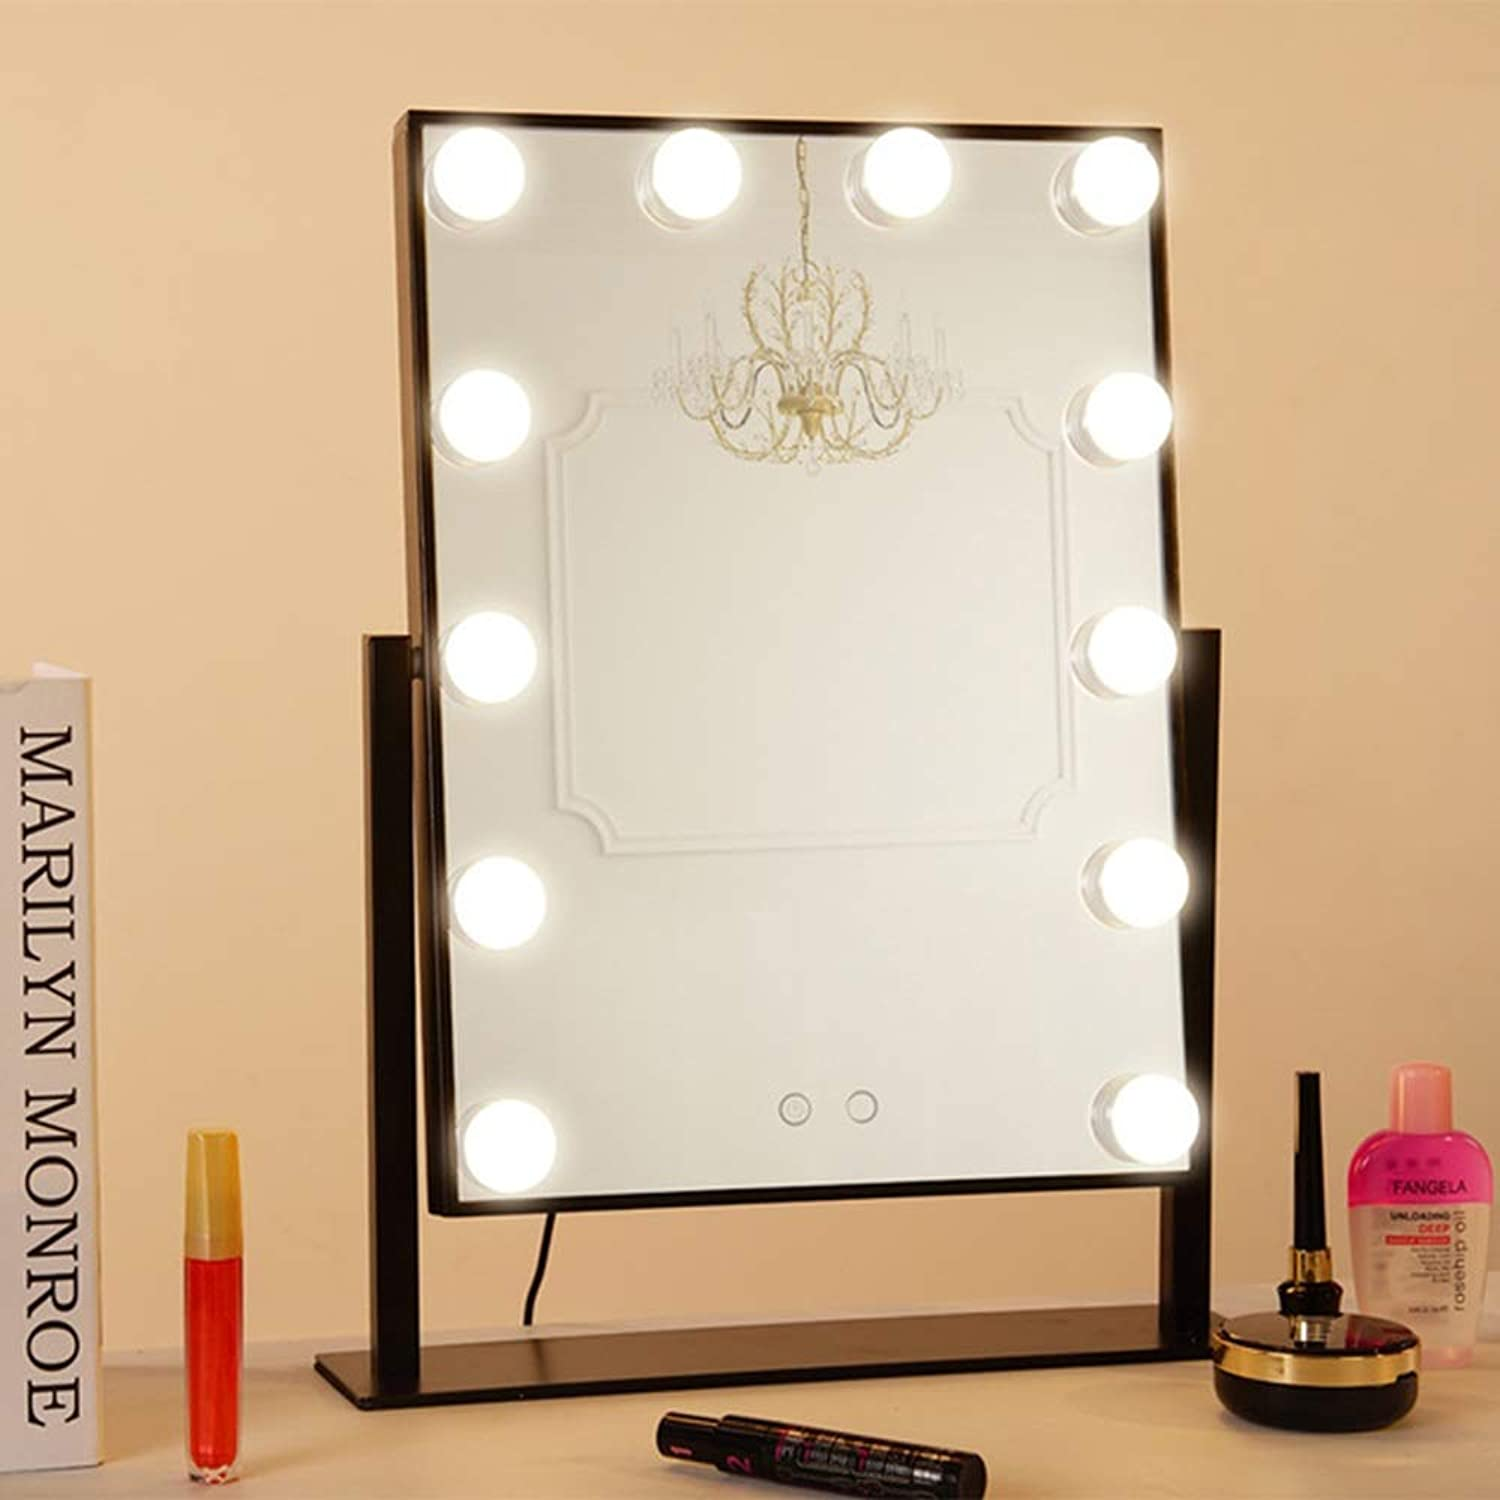 Vanity Mirrors Lighted Vanity Mirror with Touch Control Design, Hollywood Style Makeup Mirrors with Lights, Tabletop Or Wall Mounted (Edition   Charging Black)